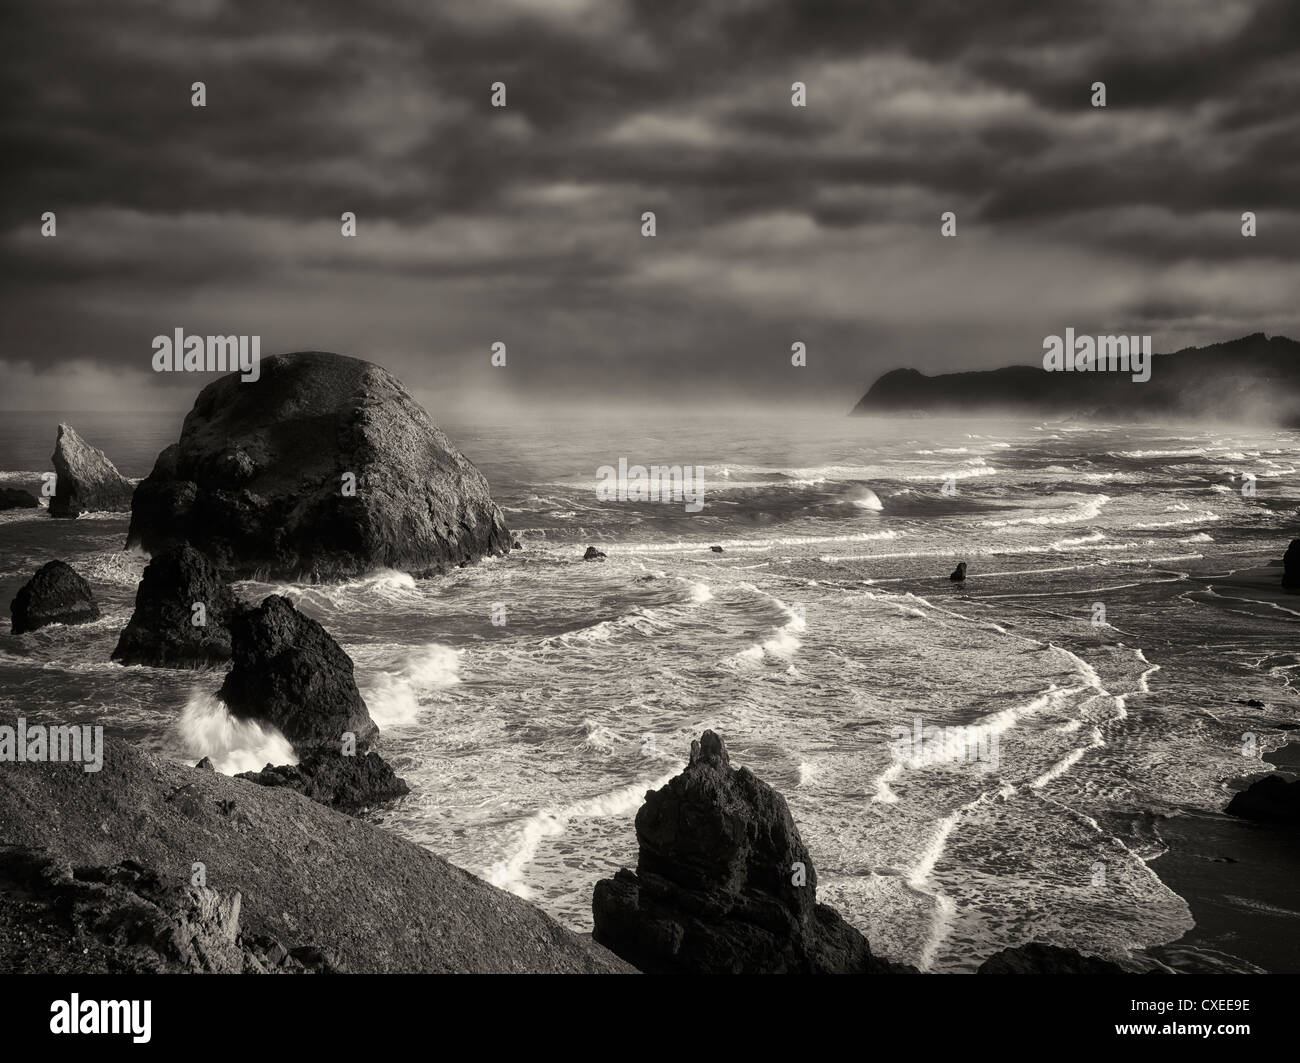 Oregon coastline at sunrise, near Crook Point. - Stock Image